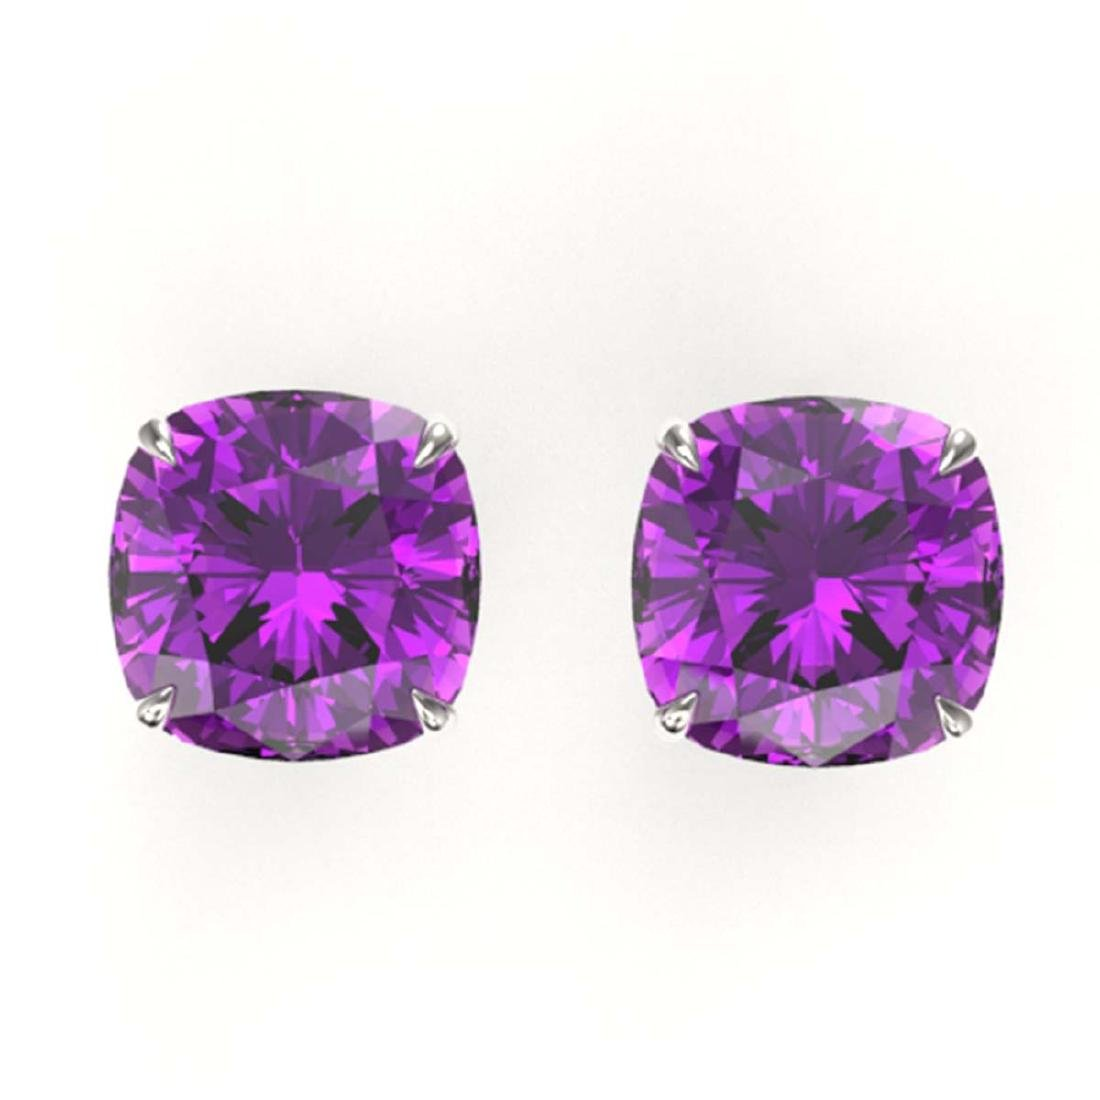 12 ctw Cushion Cut Amethyst Stud Earrings 18K White